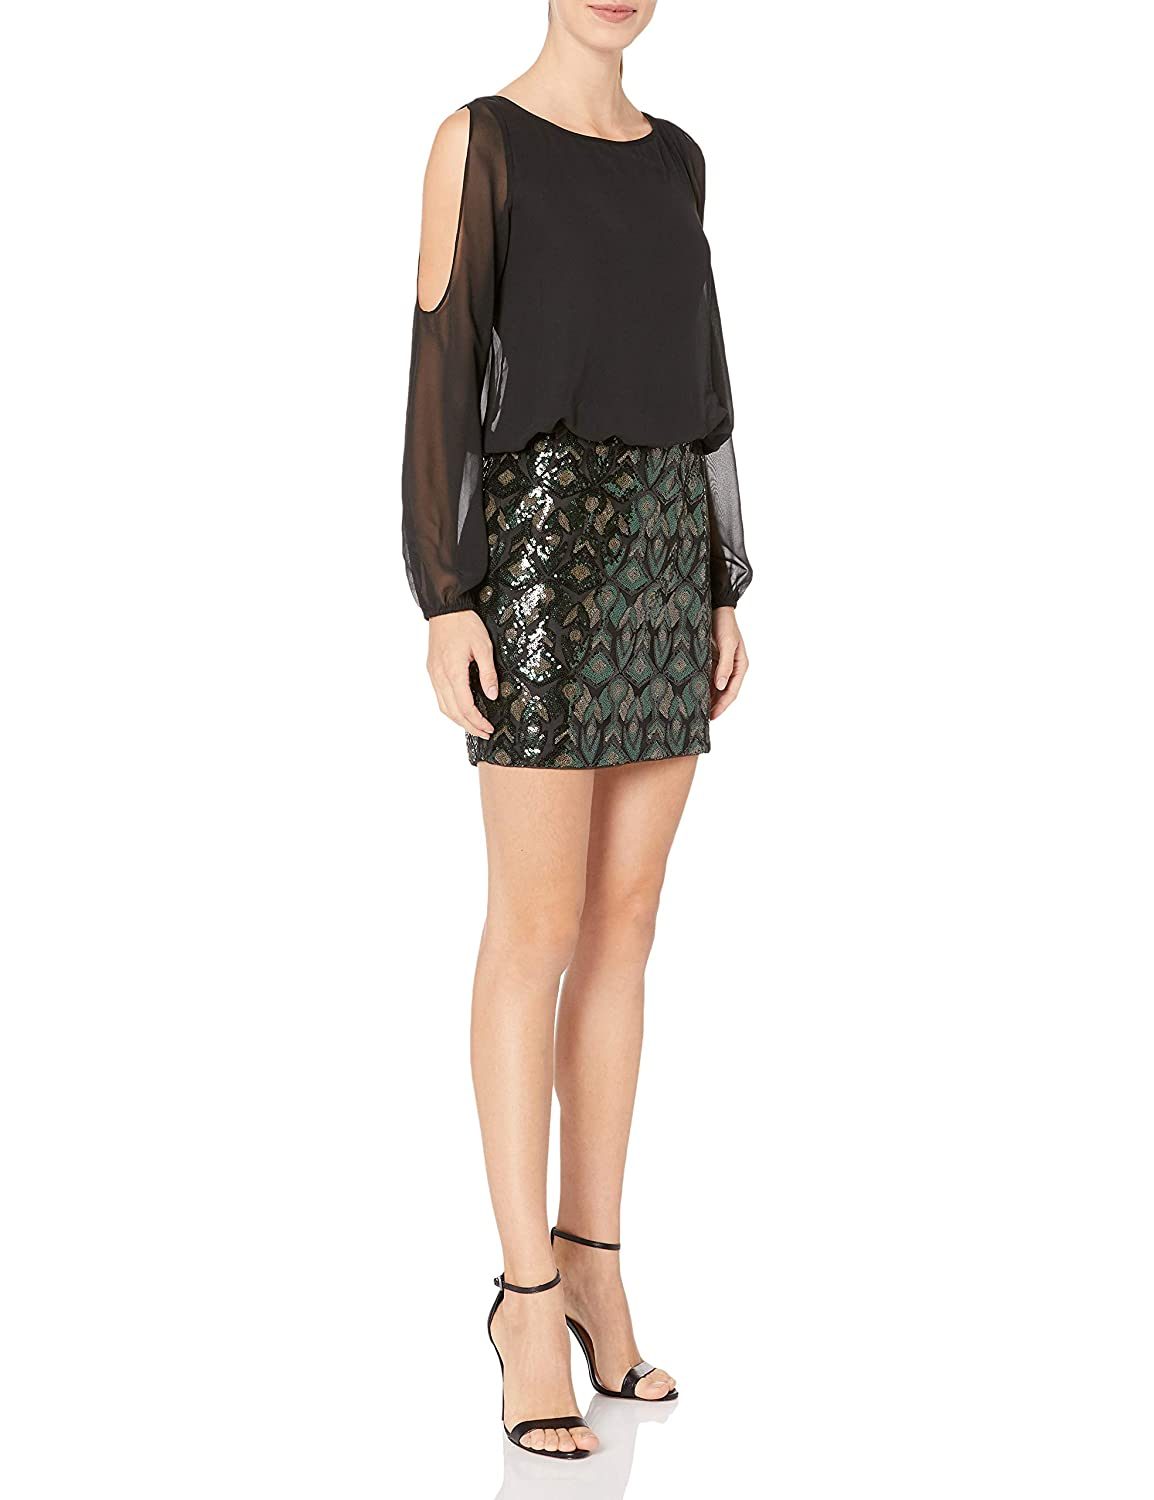 Aidan by Aidan Mattox Womens L//s Cold Shoulder Chiffon Blousson Cocktail Dress with Stretch Sequin Skirt